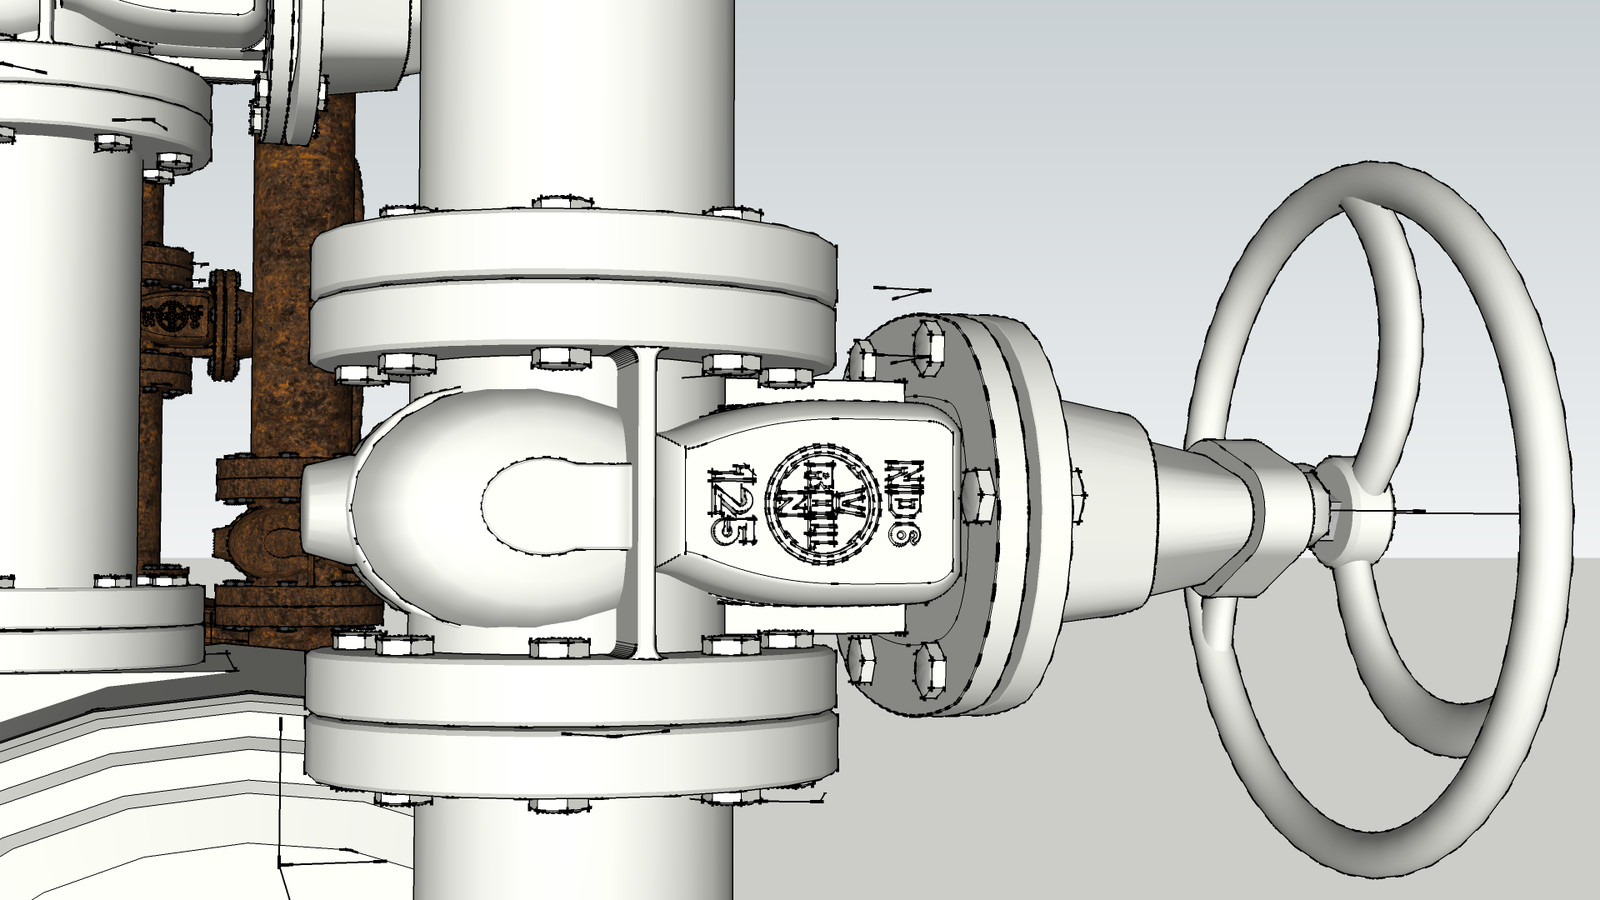 Stainless Steel and Chrome Plated Cast Iron Ventilation and Plumbing.